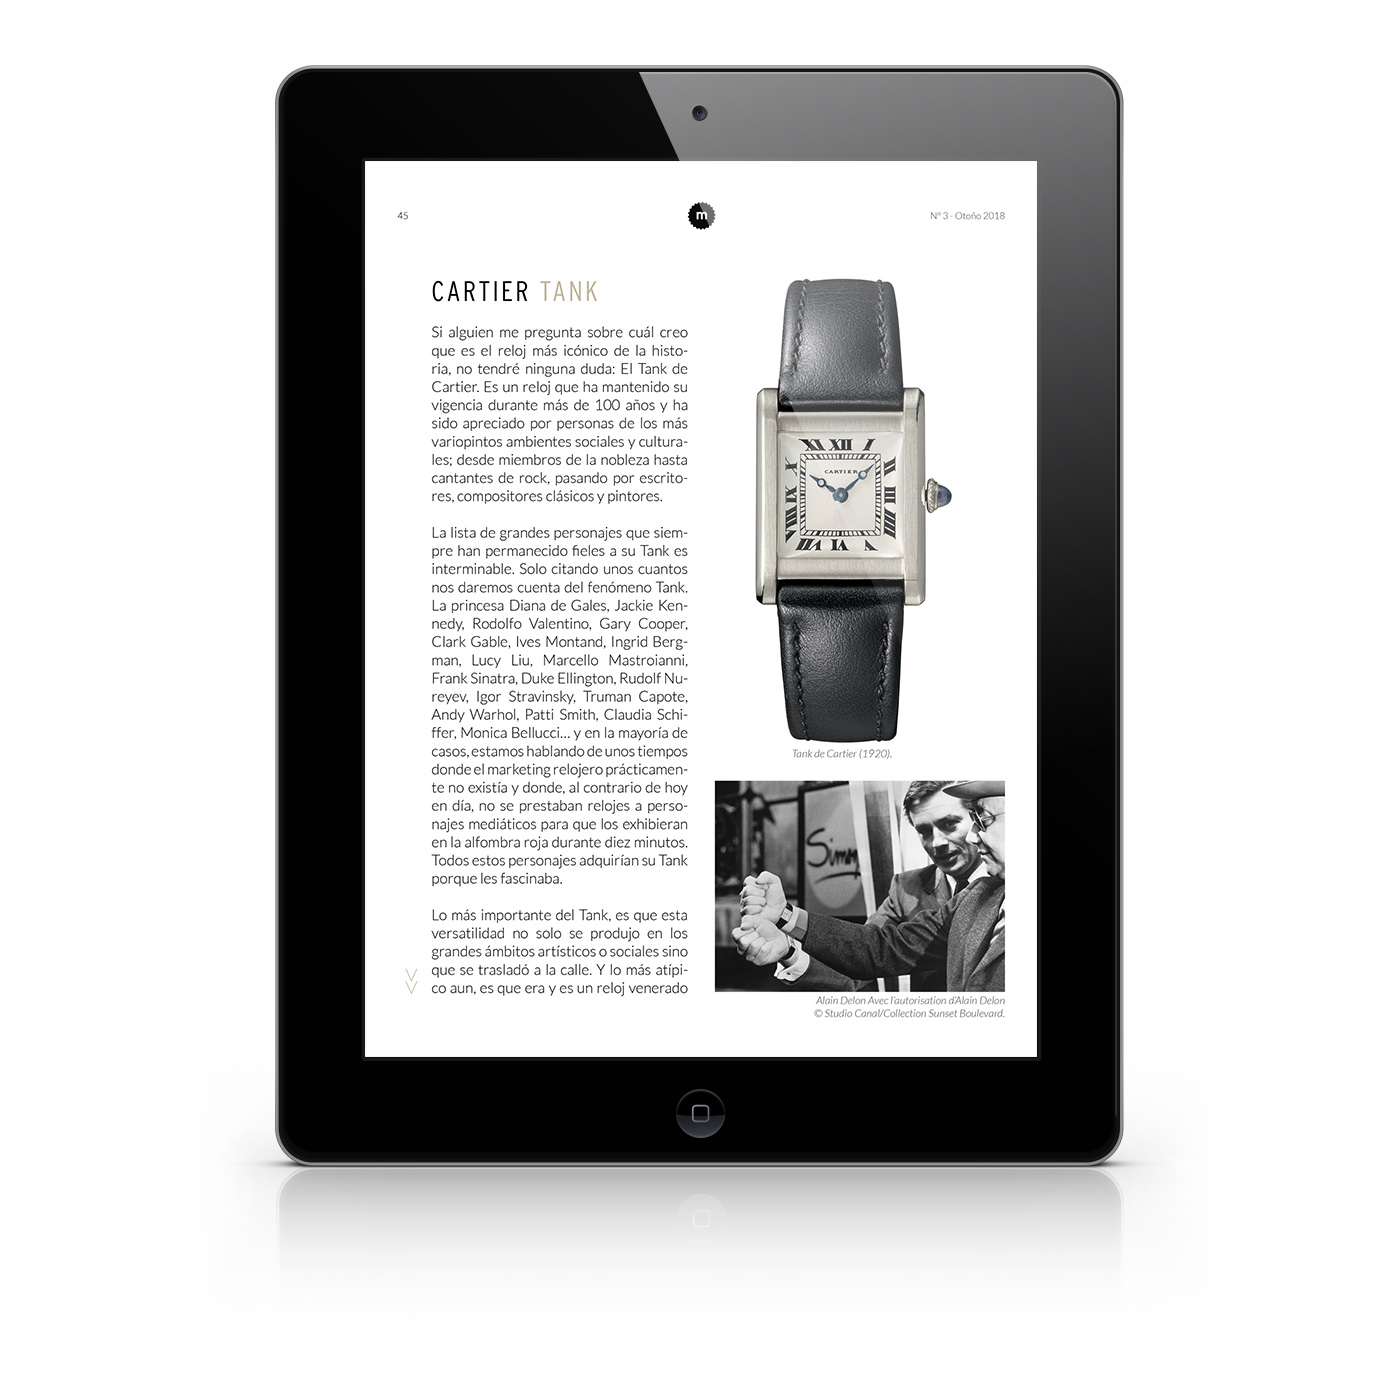 revista-digital-manufacture-ipad-disseny